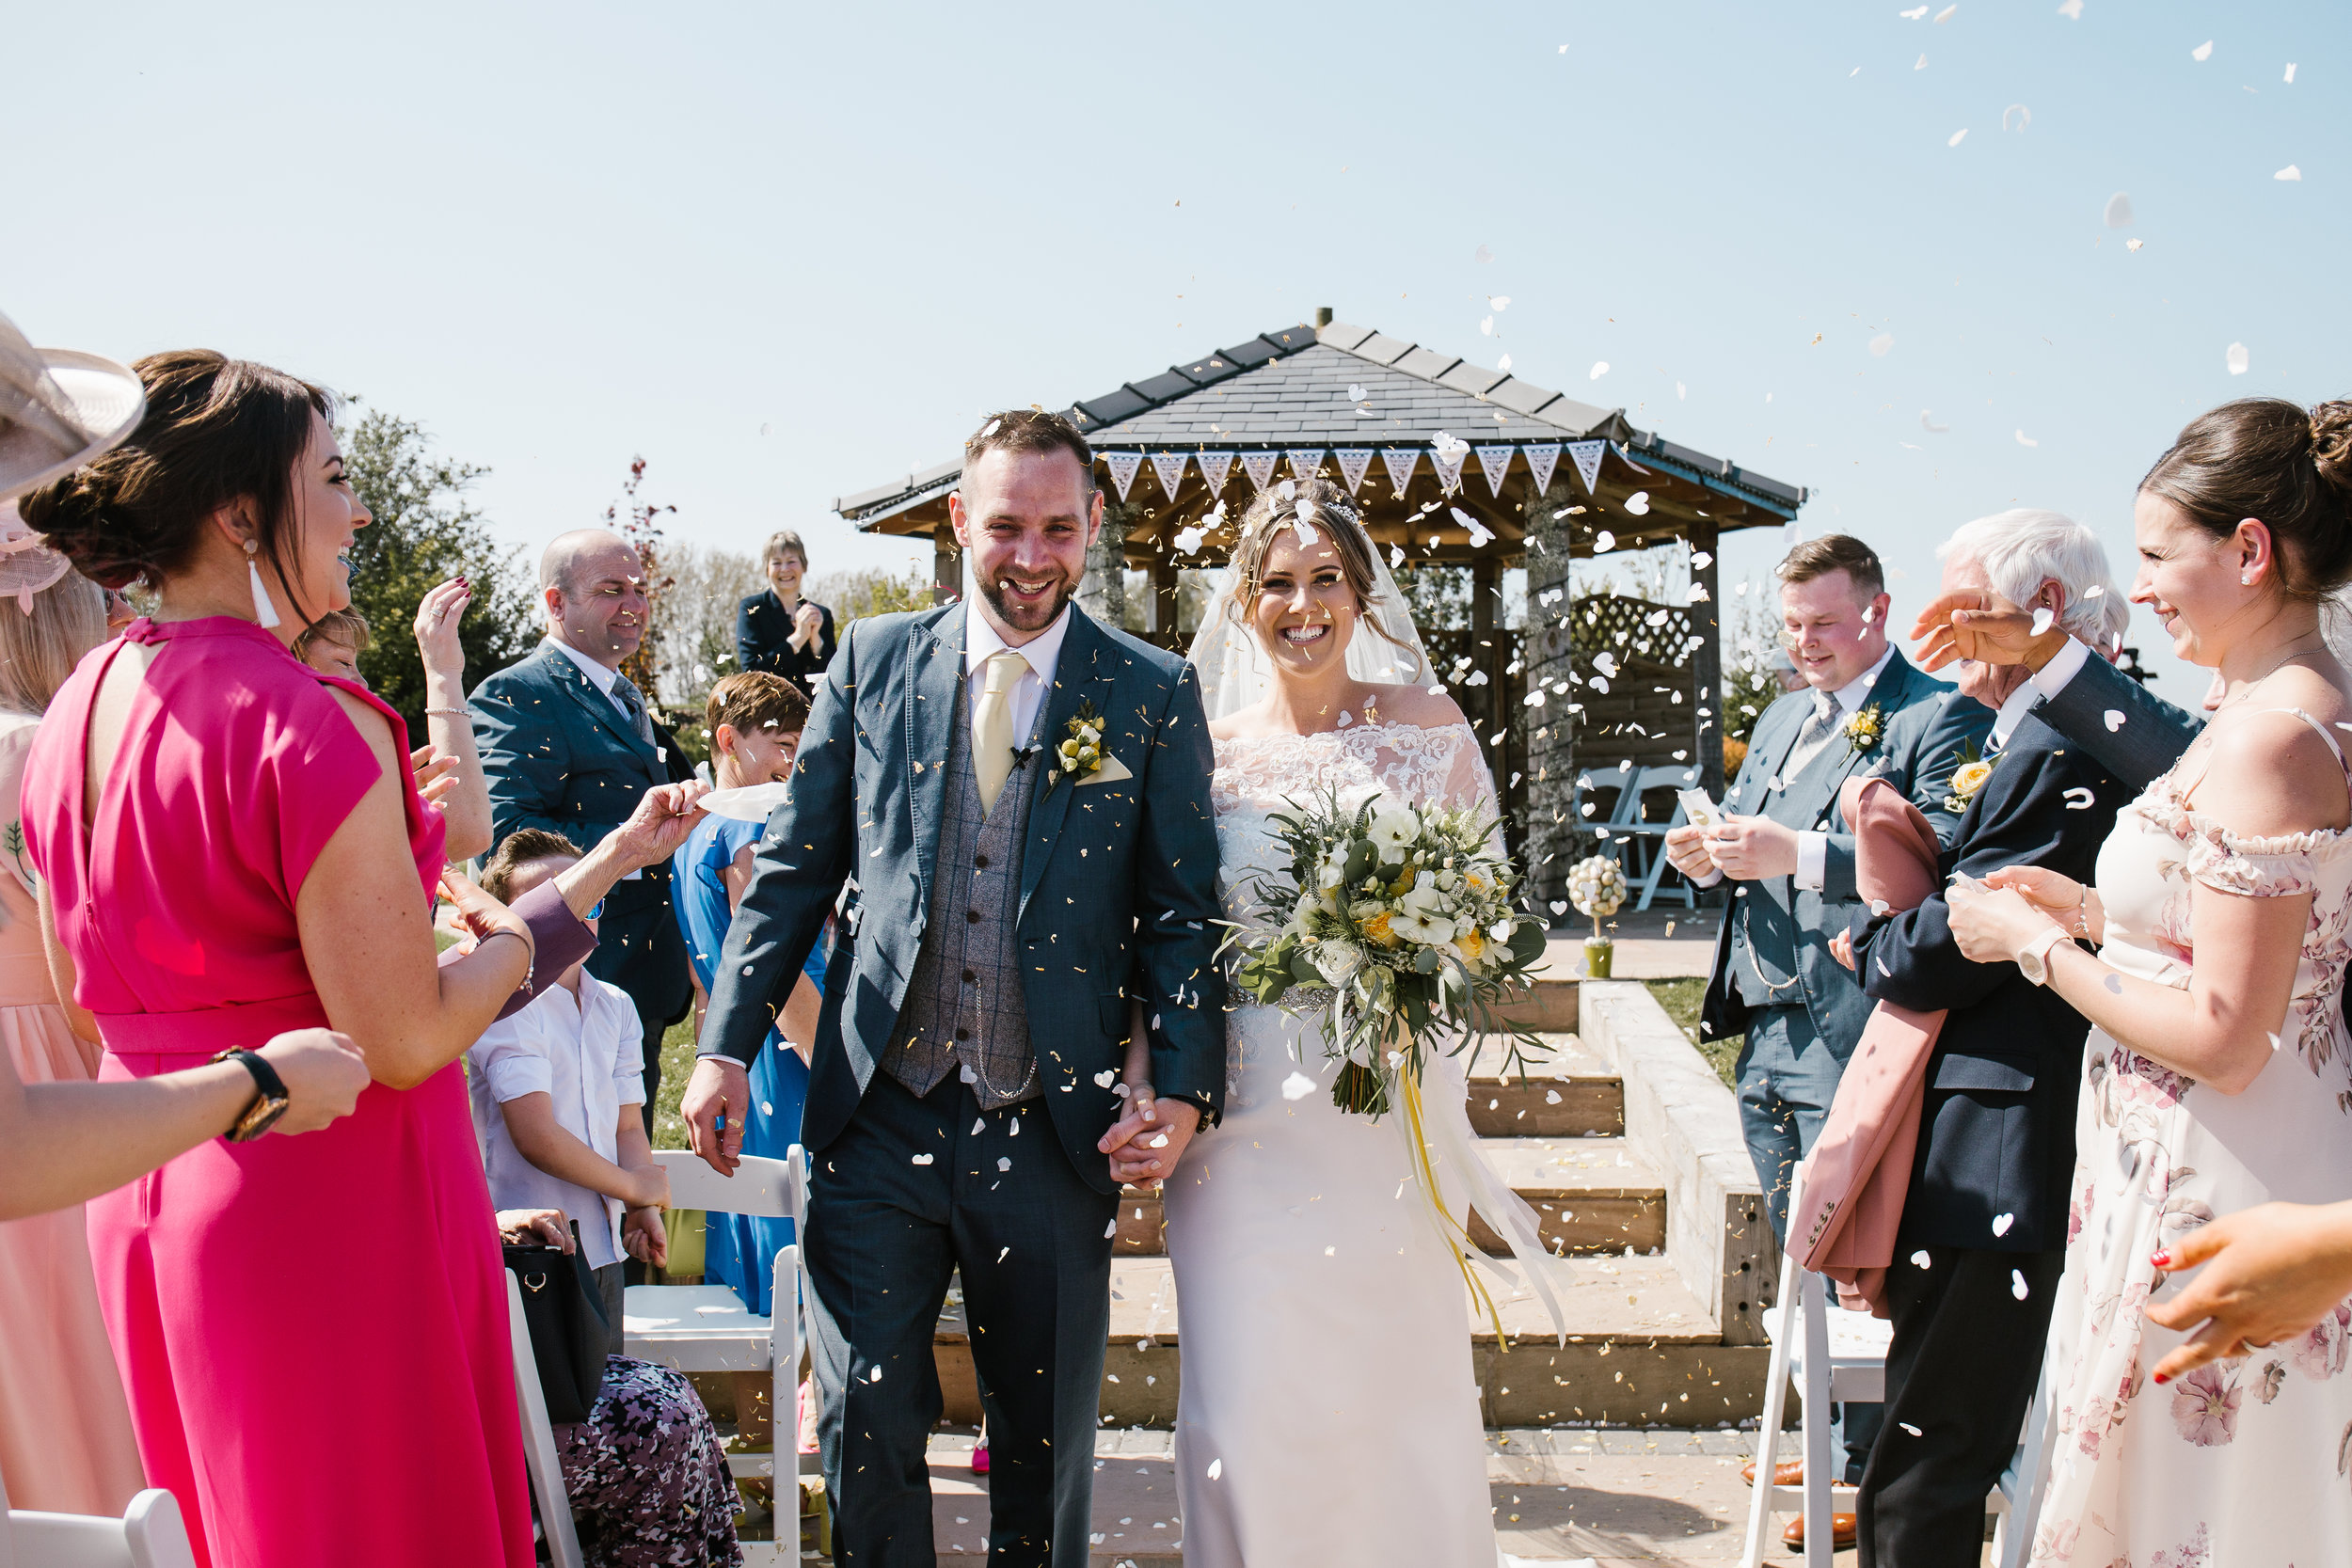 bride and groom laughing together as they walked down the aisle being showered in confetti after becoming husband and wife